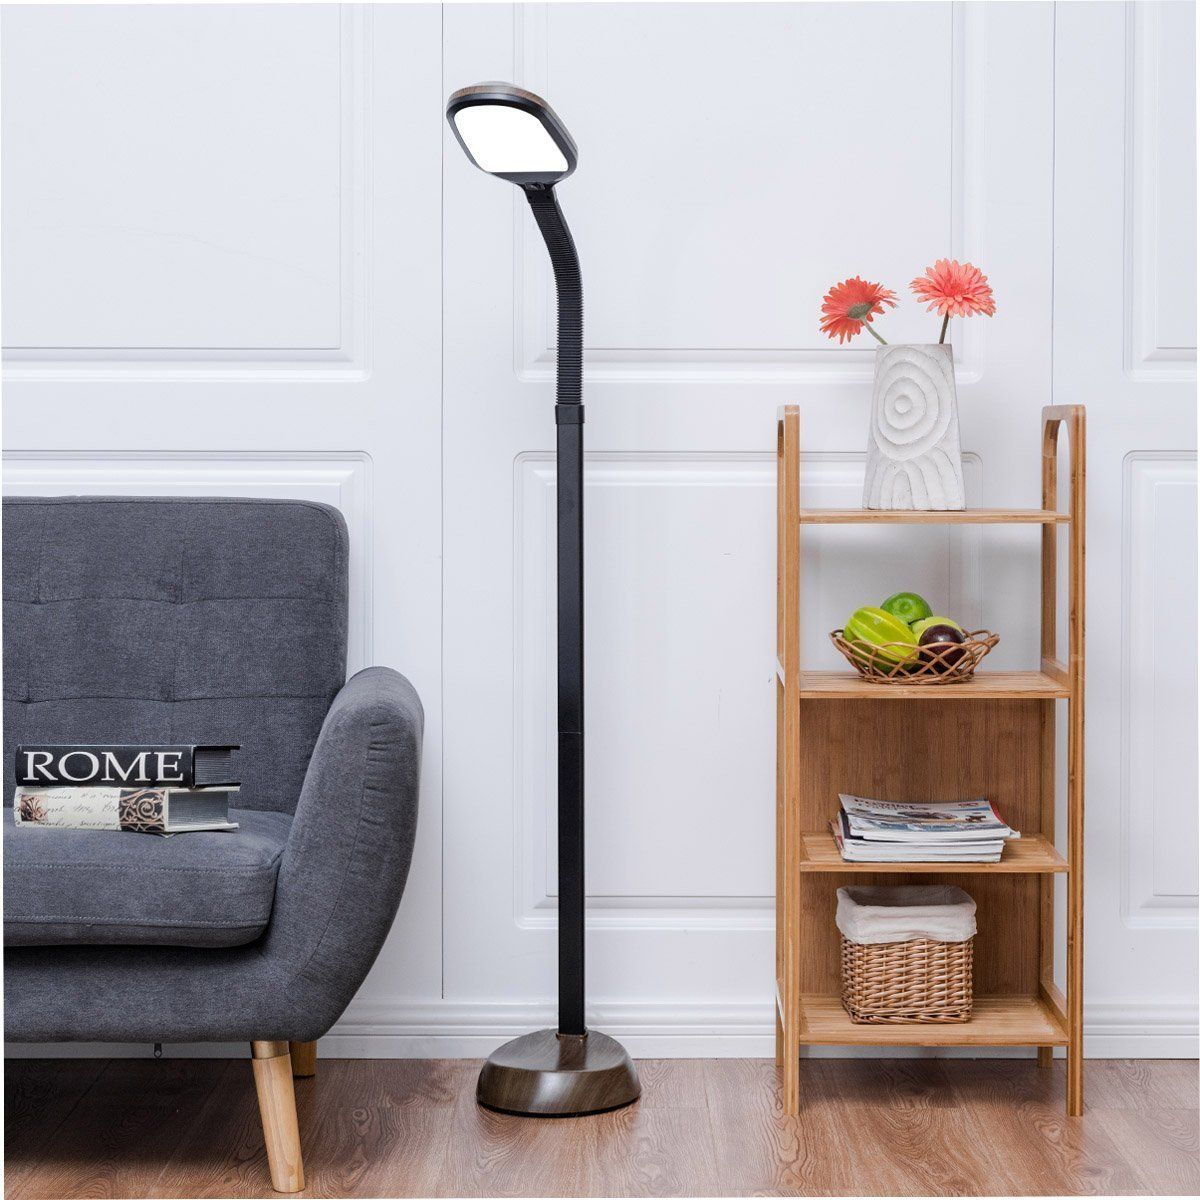 The Gorgeous And Beautiful Design Makes It Best Decorative Lighting Solution For Home Floor Lamps Bedro Gooseneck Floor Lamp Tall Living Room Lamps Floor Lamp #reading #lamp #for #living #room